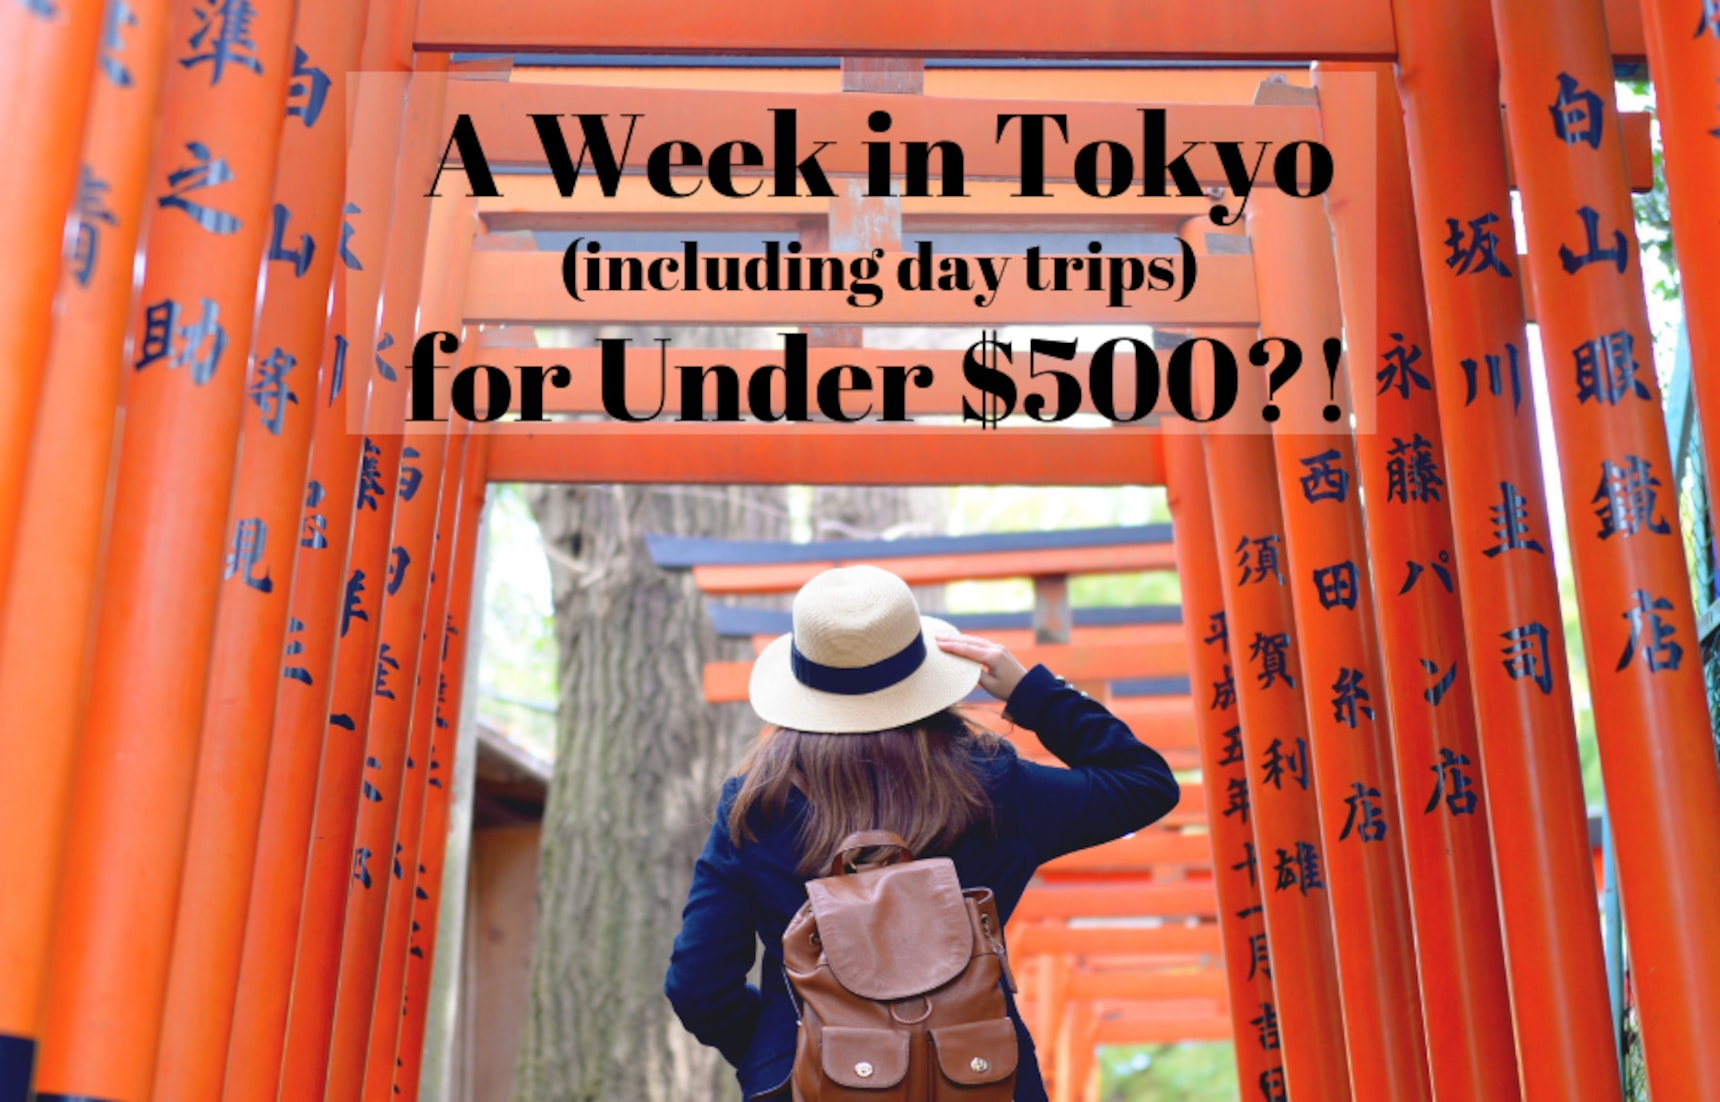 A Week in Tokyo (+ Day Trips) for Under $500?!